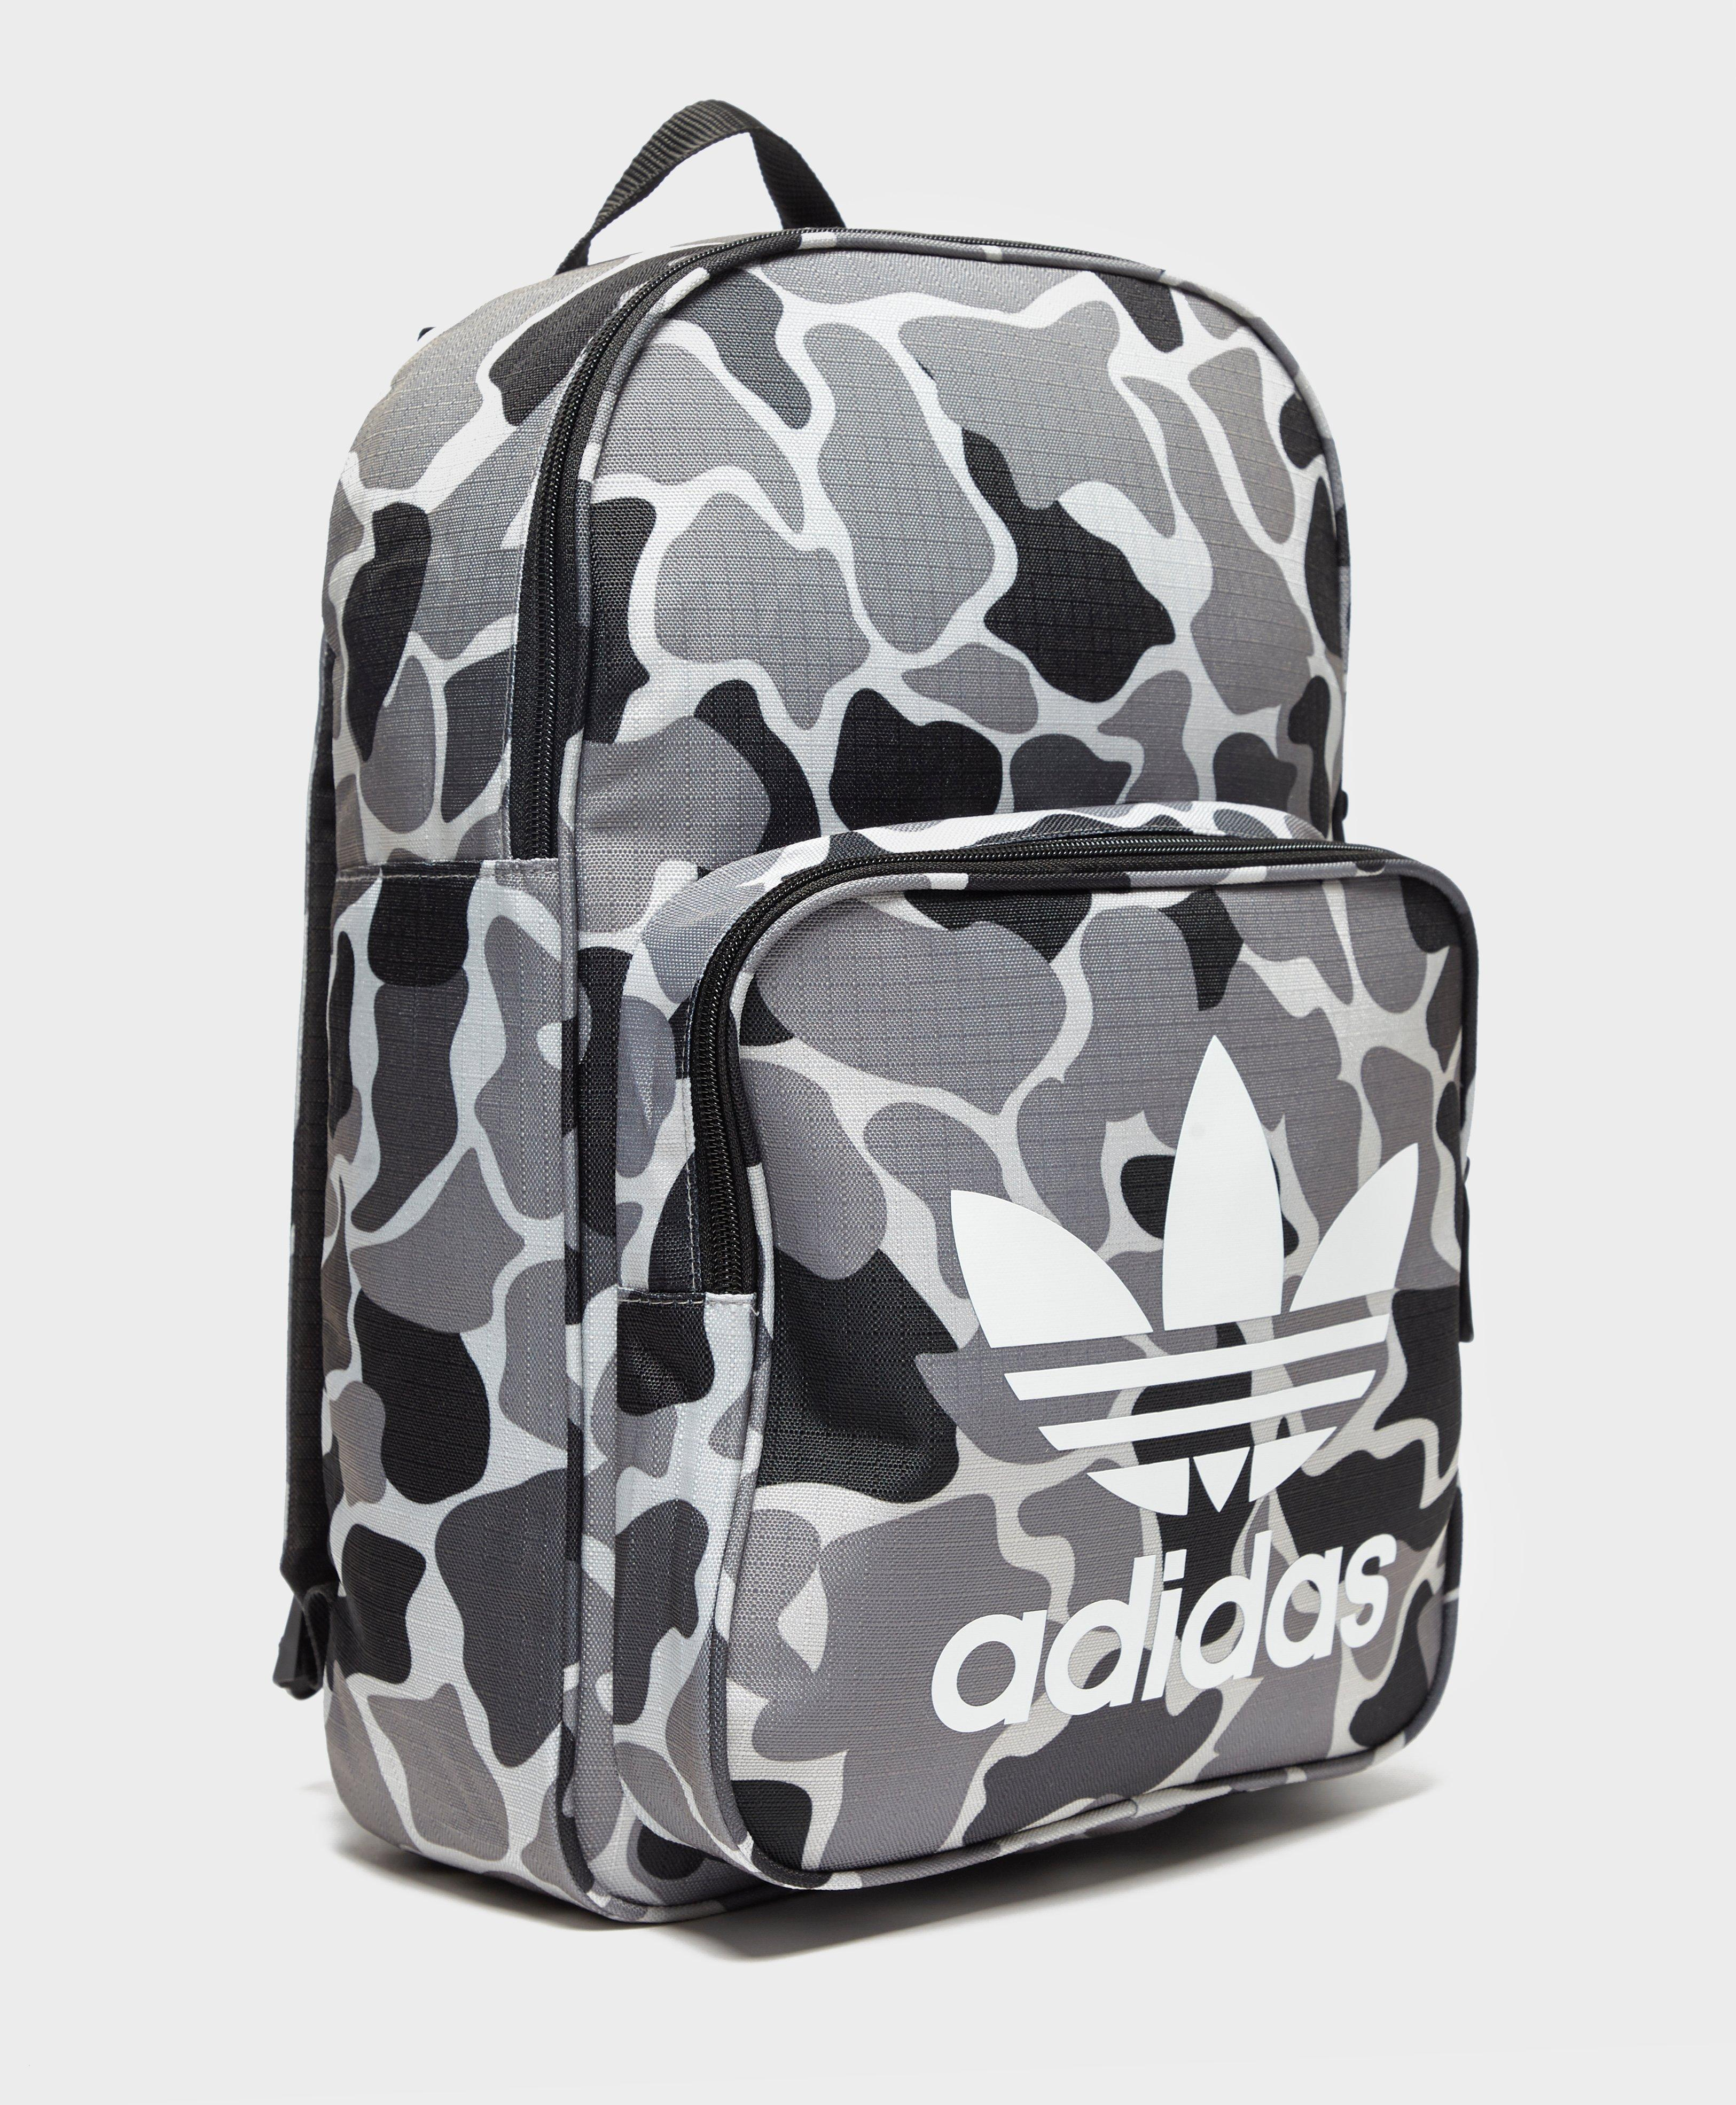 Lyst - adidas Originals Classic Backpack for Men 83ccee758ba95